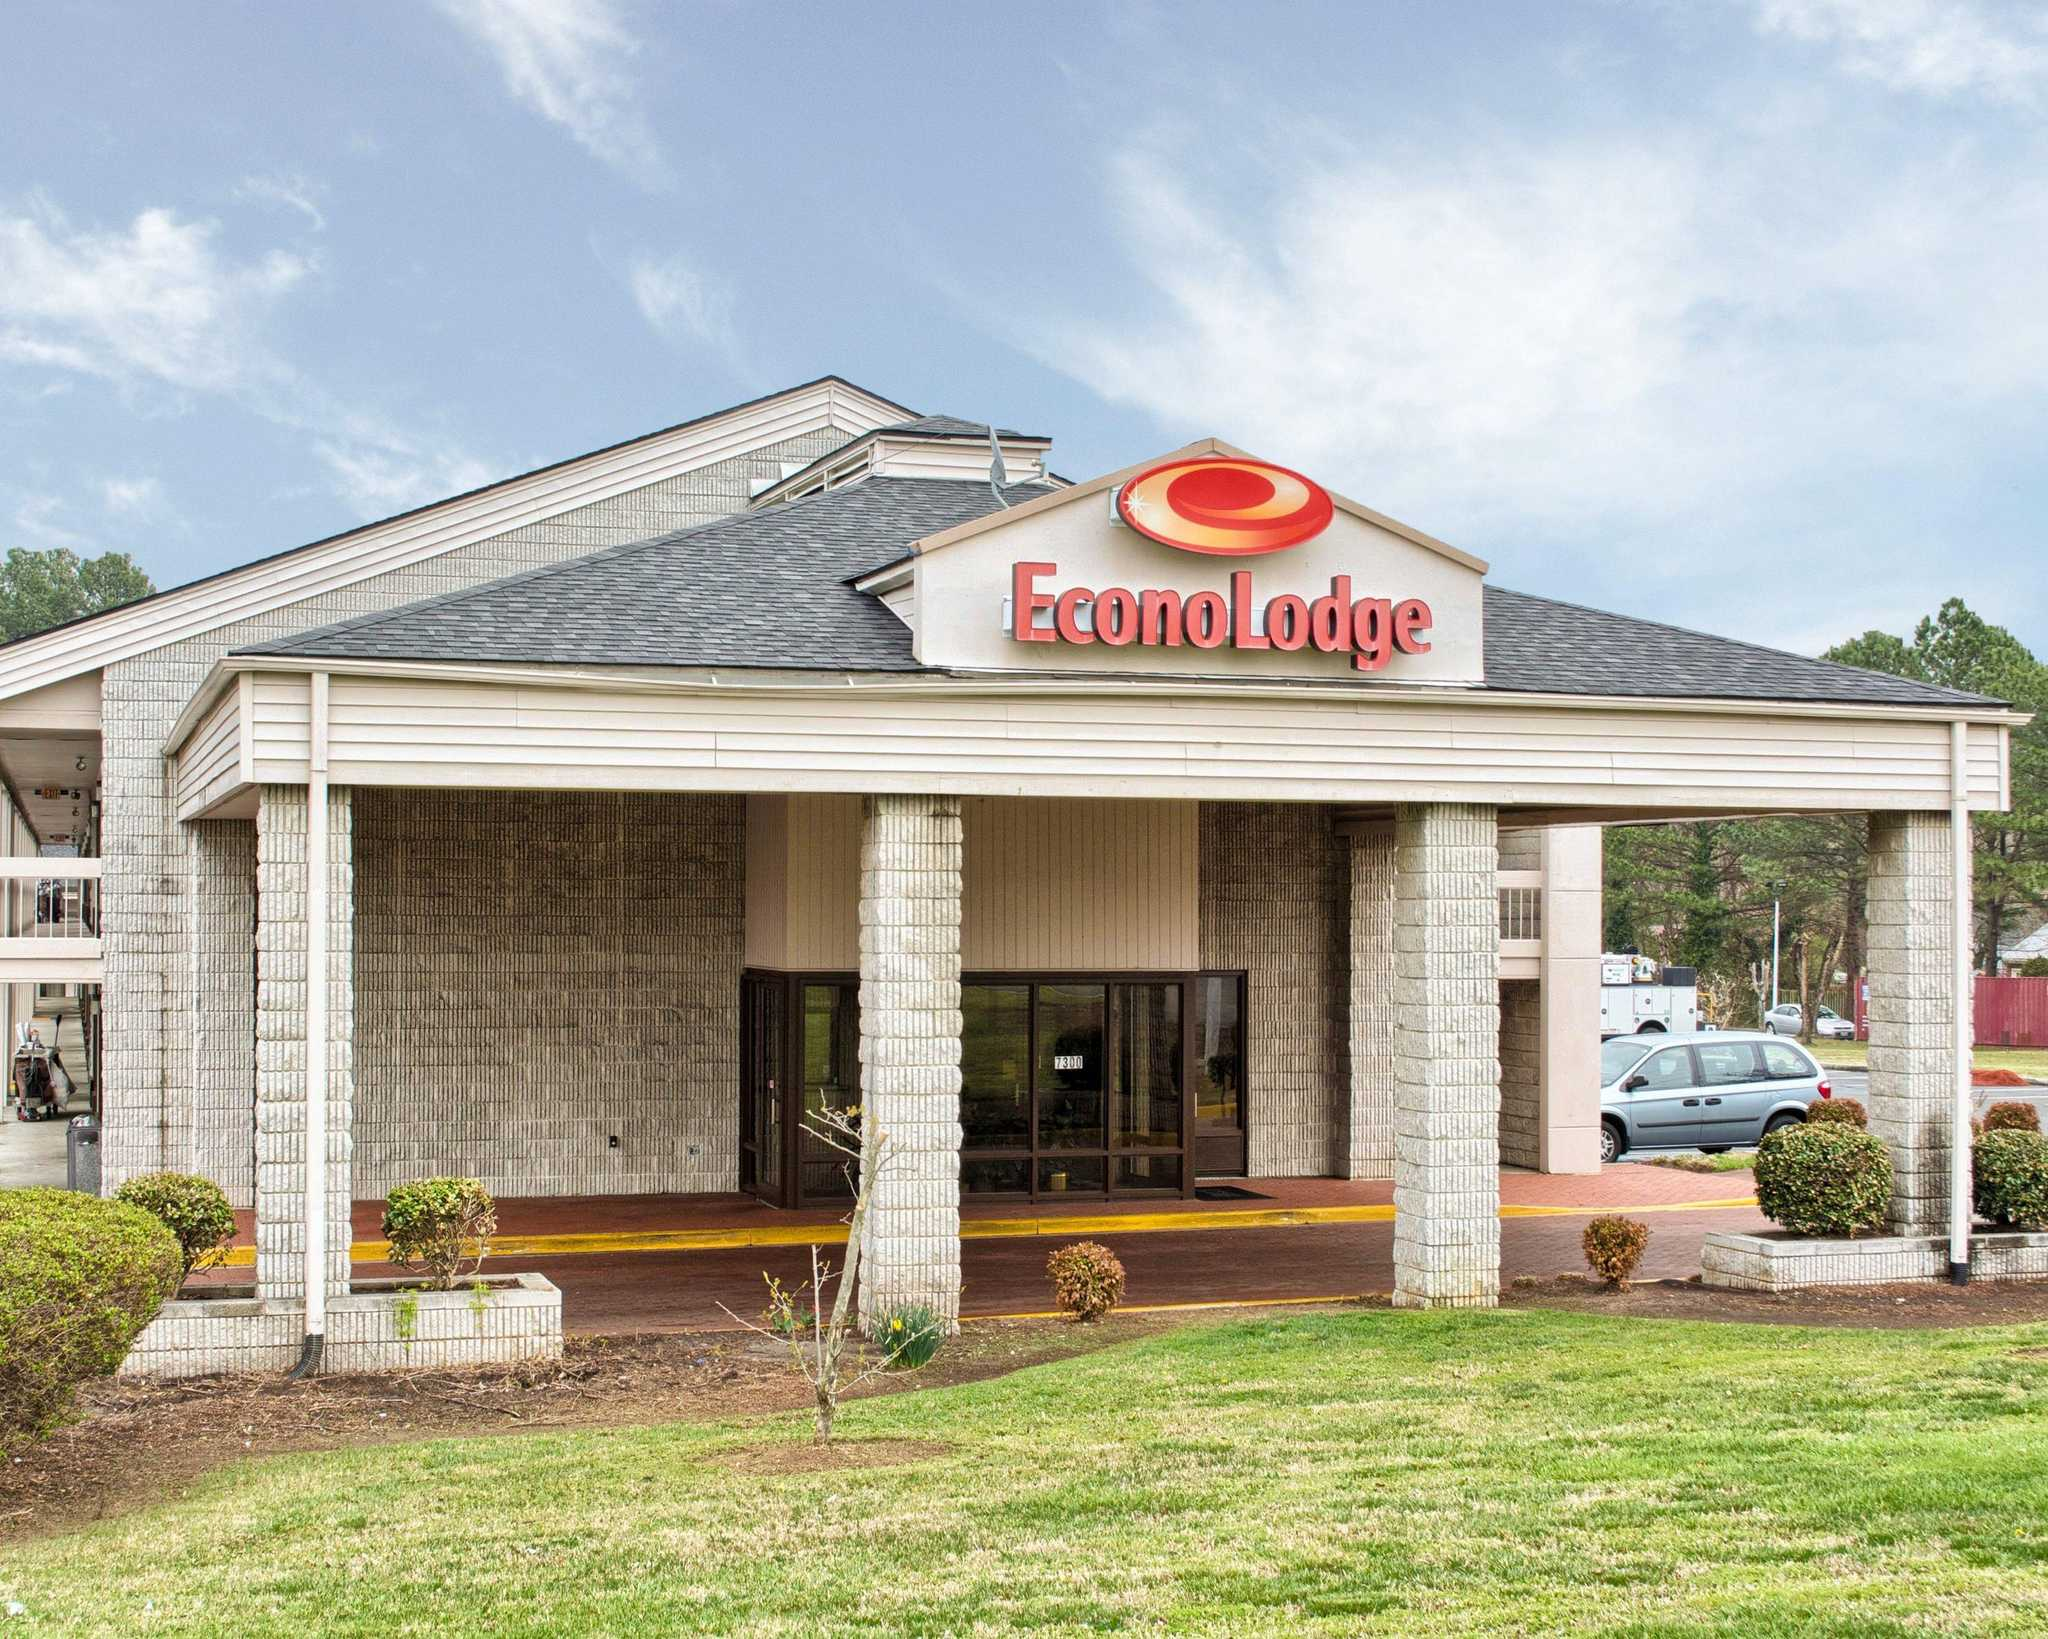 Econo Lodge Coupons Near Me In New York 8coupons